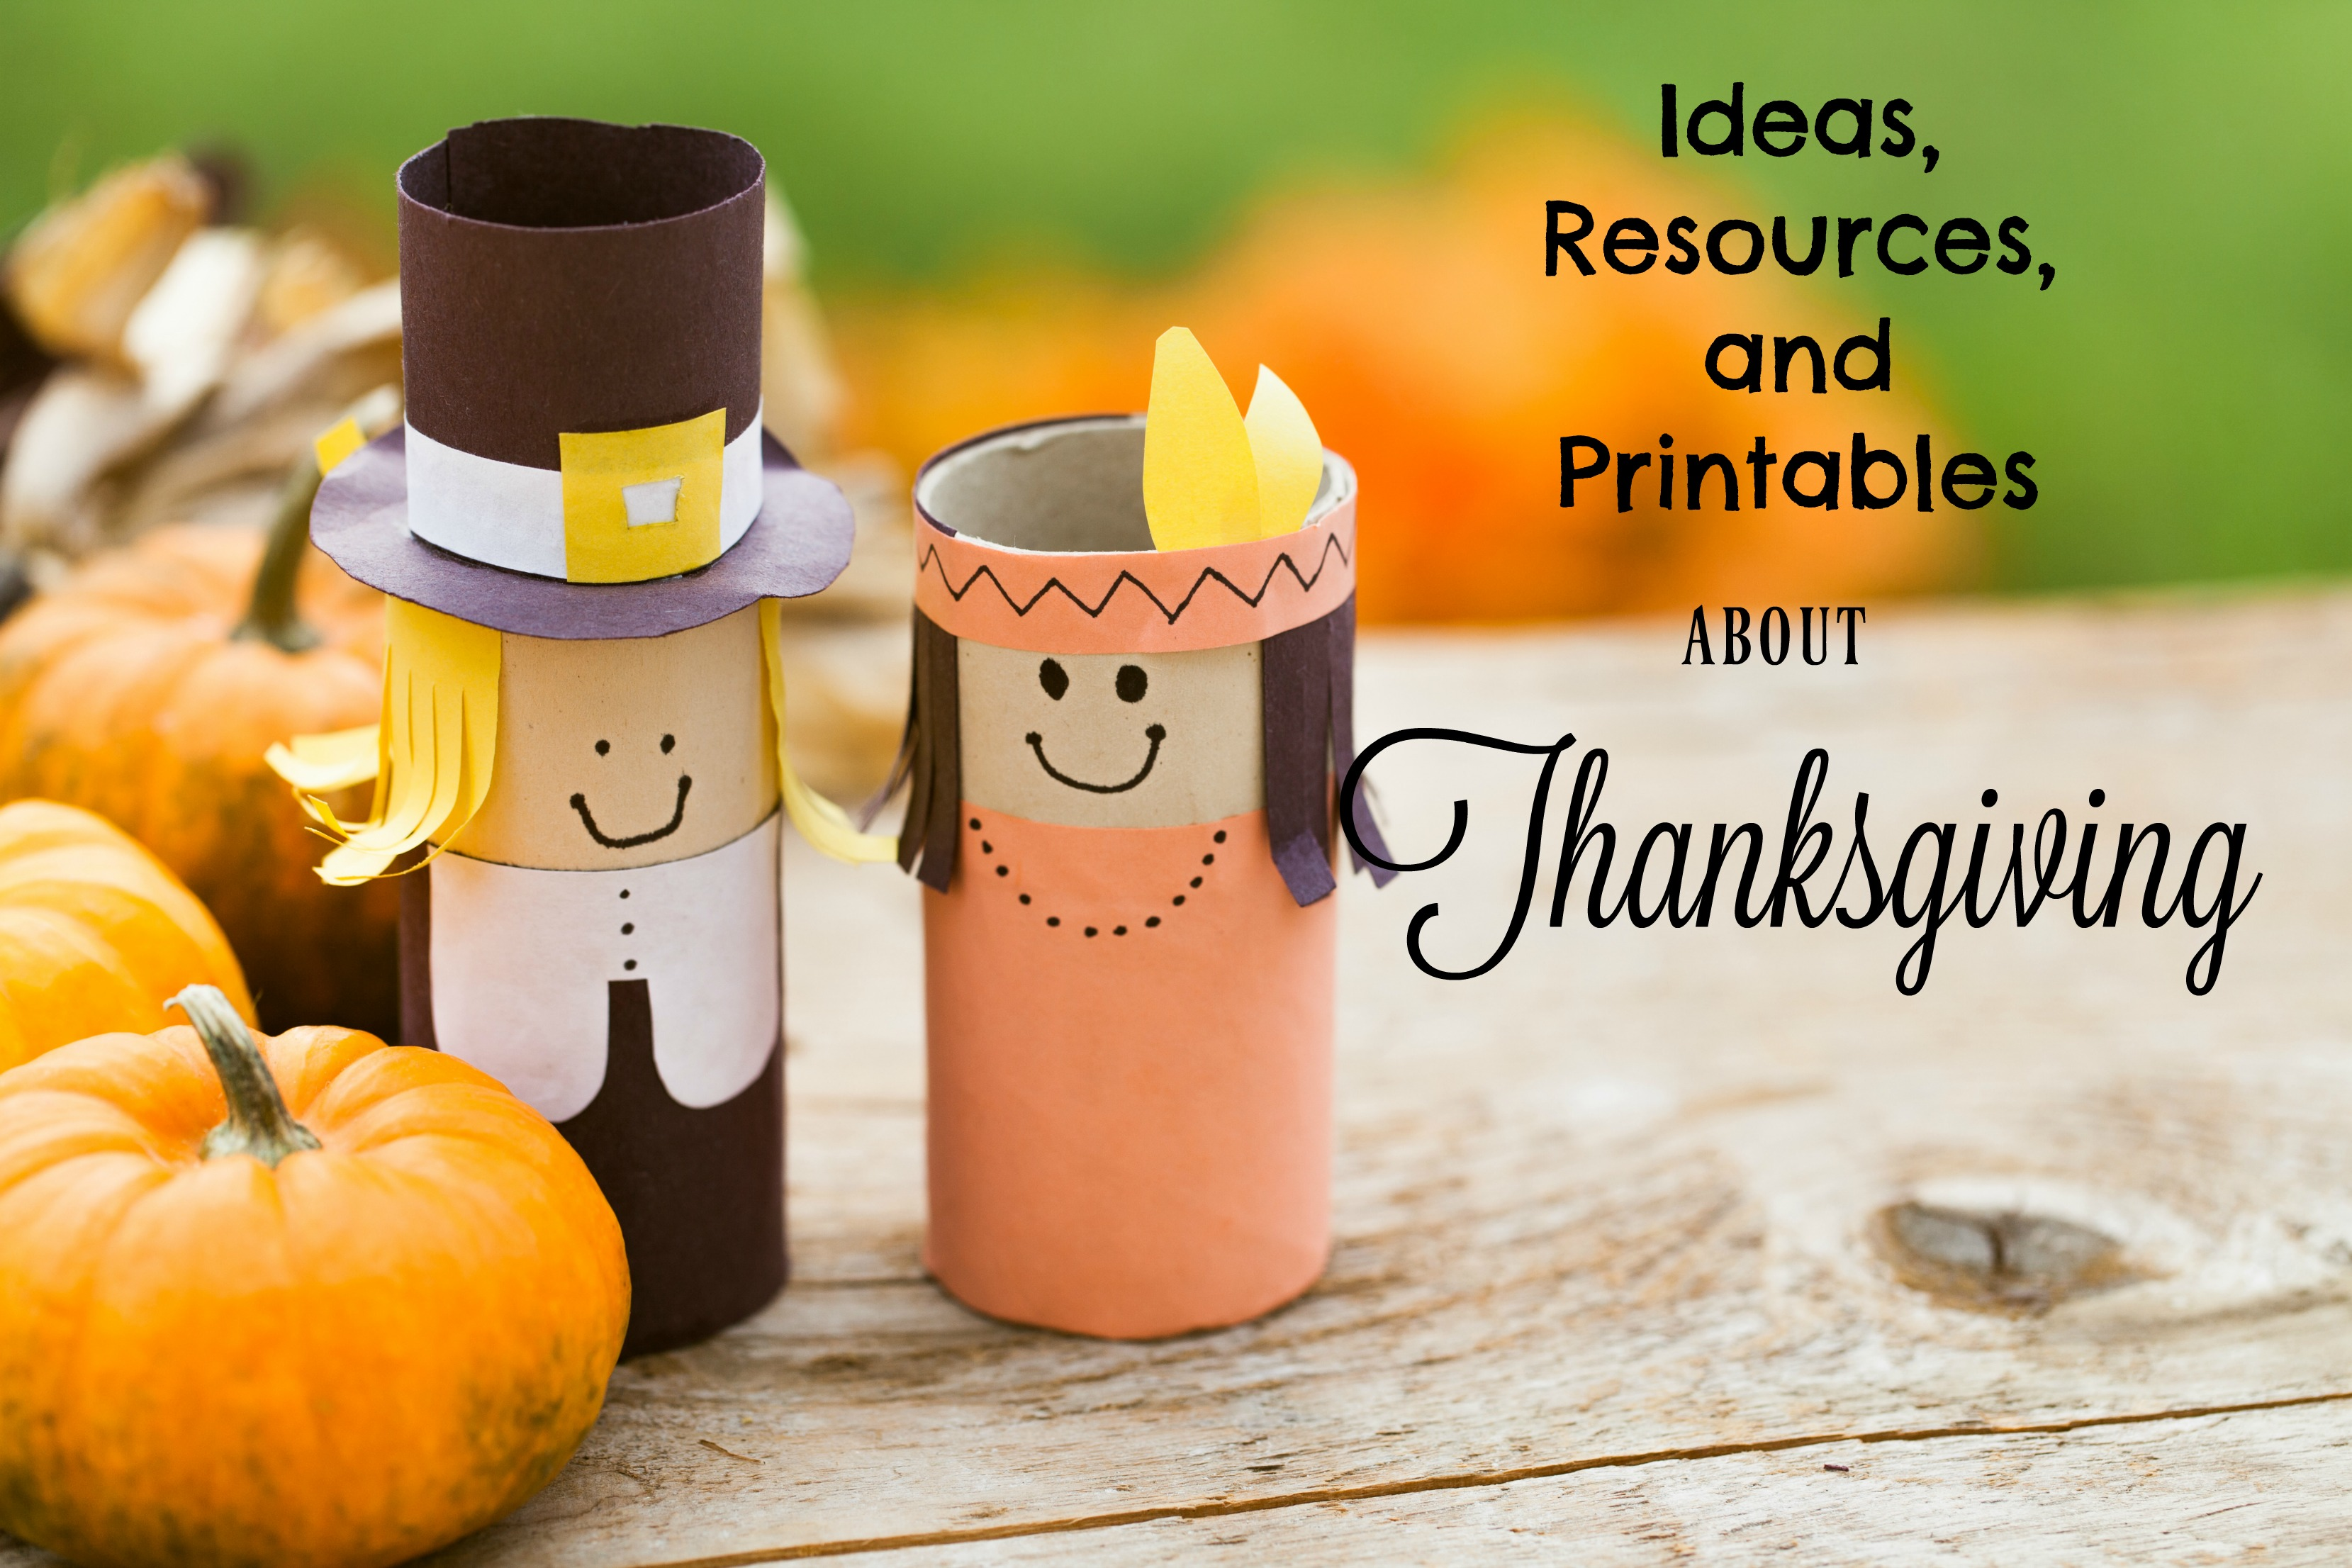 This is a great collection of lots of Thanksgiving ideas and activities!